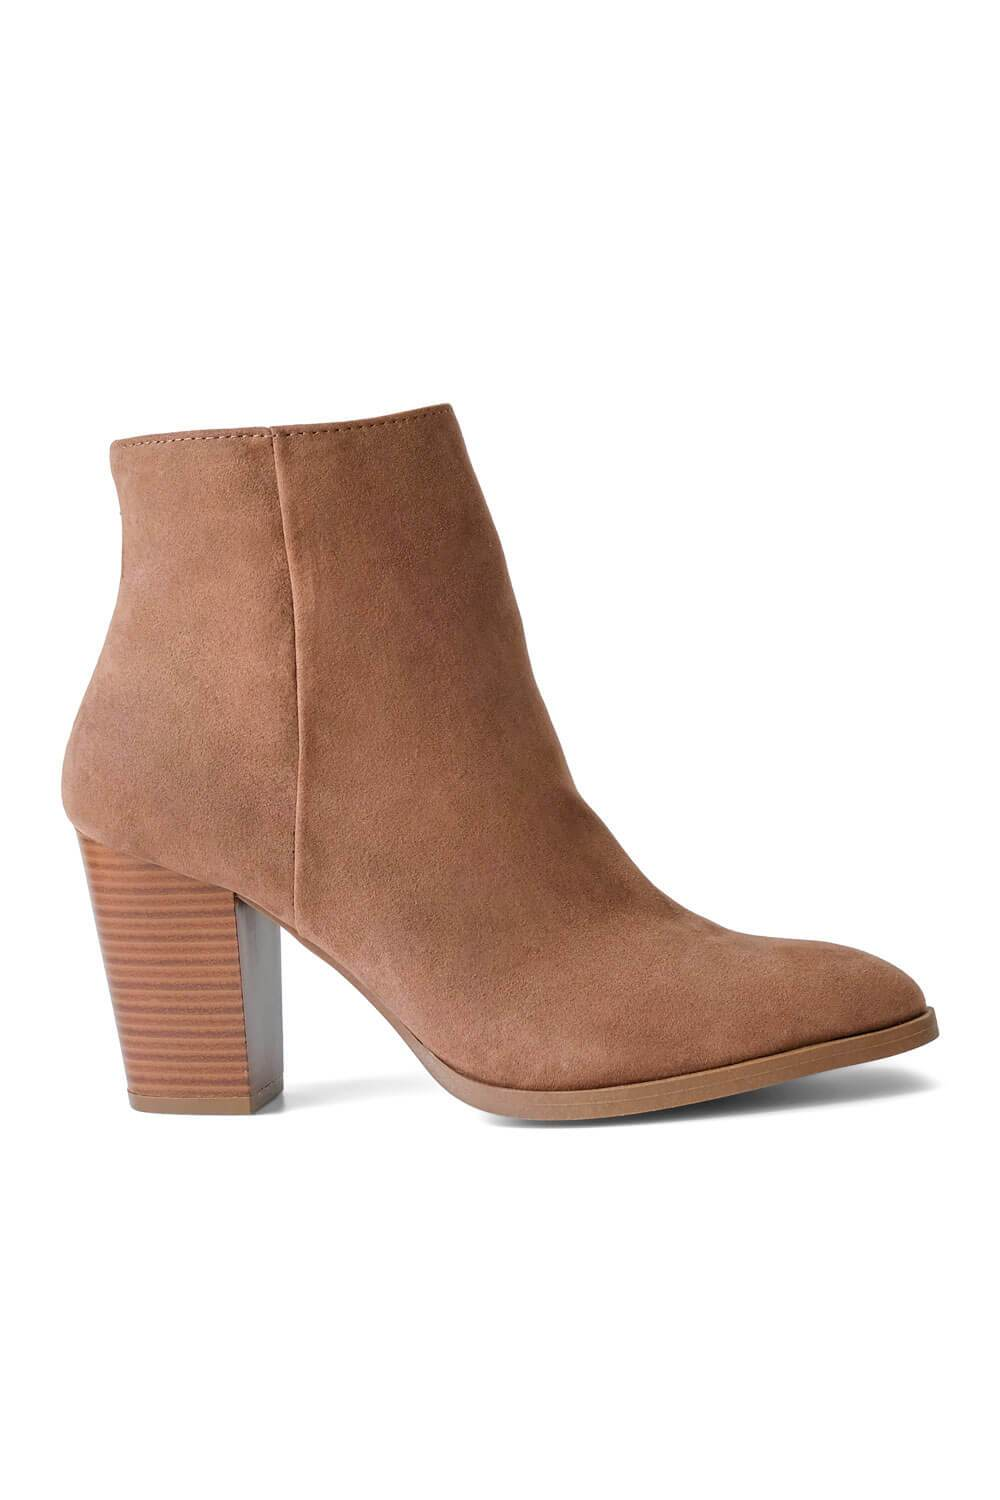 MILK MONEY Womens Brown Suede Boots Side